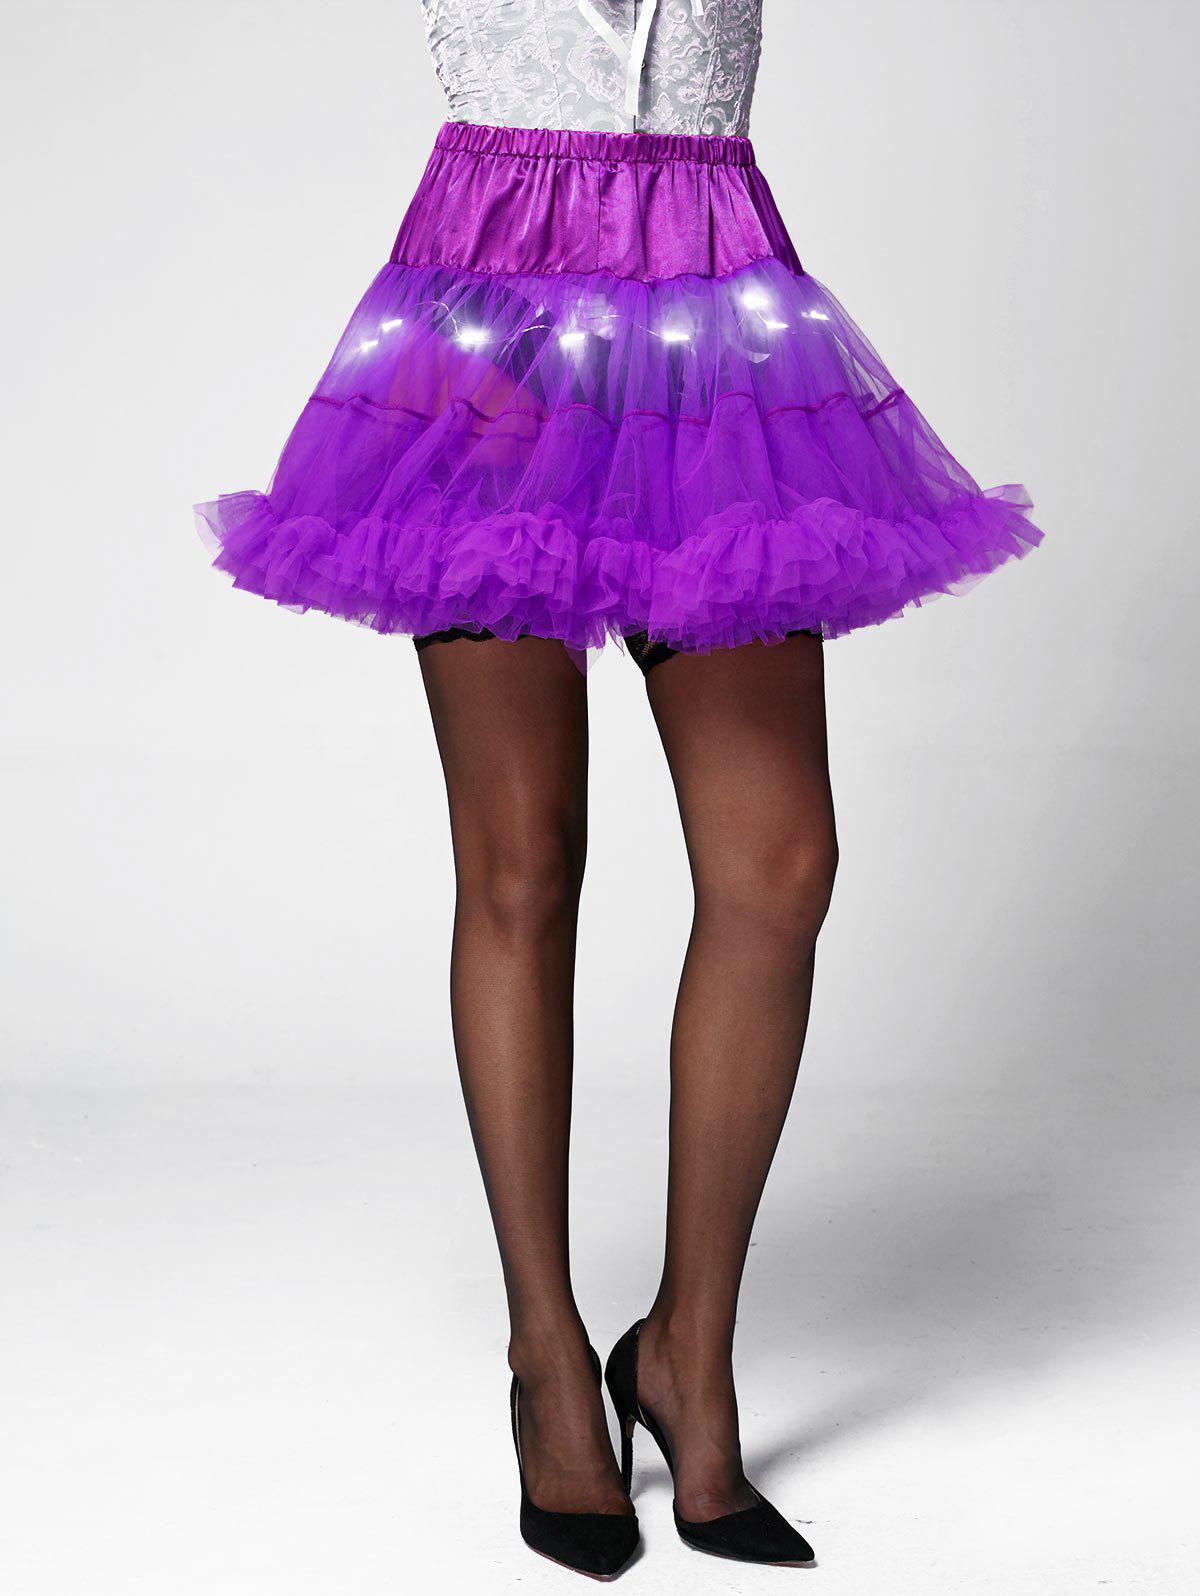 Ruffles Light Up Tutu Voile Cosplay Skirt - LIGHT PURPLE ONE SIZE